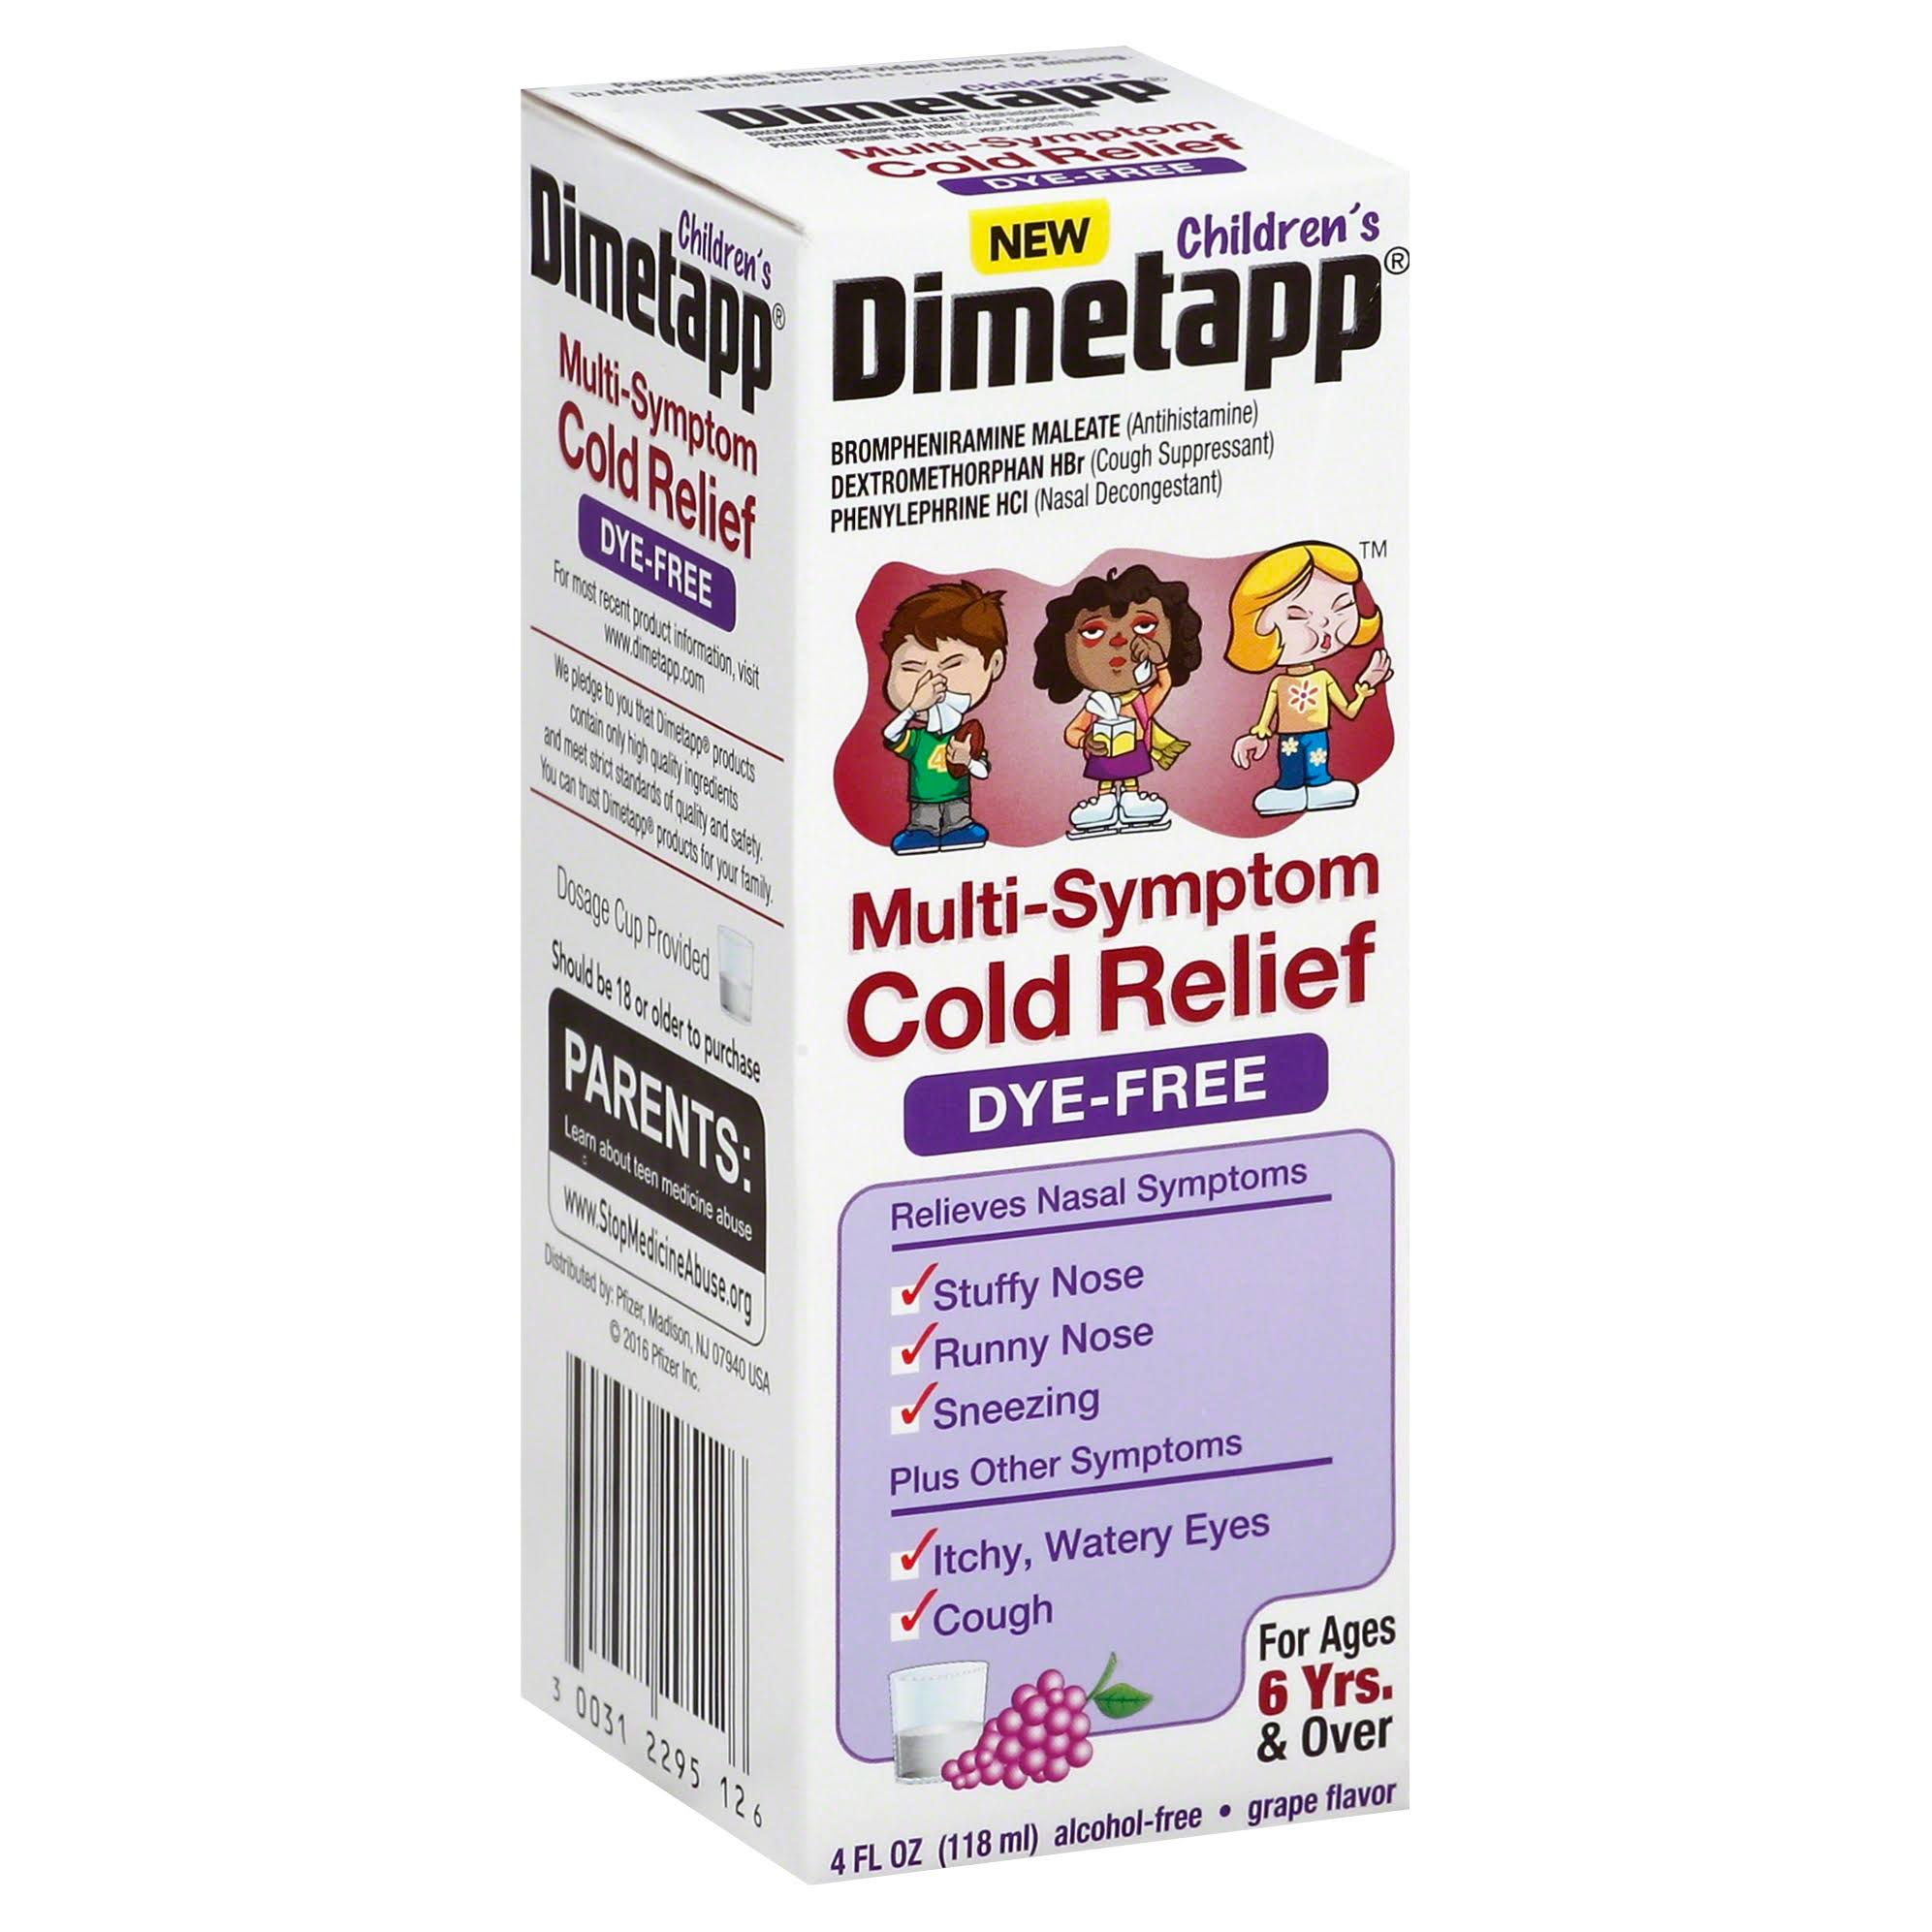 Dimetapp Children's Multi-Symptom Cold Relief Liquid - Grape Flavored, 4oz